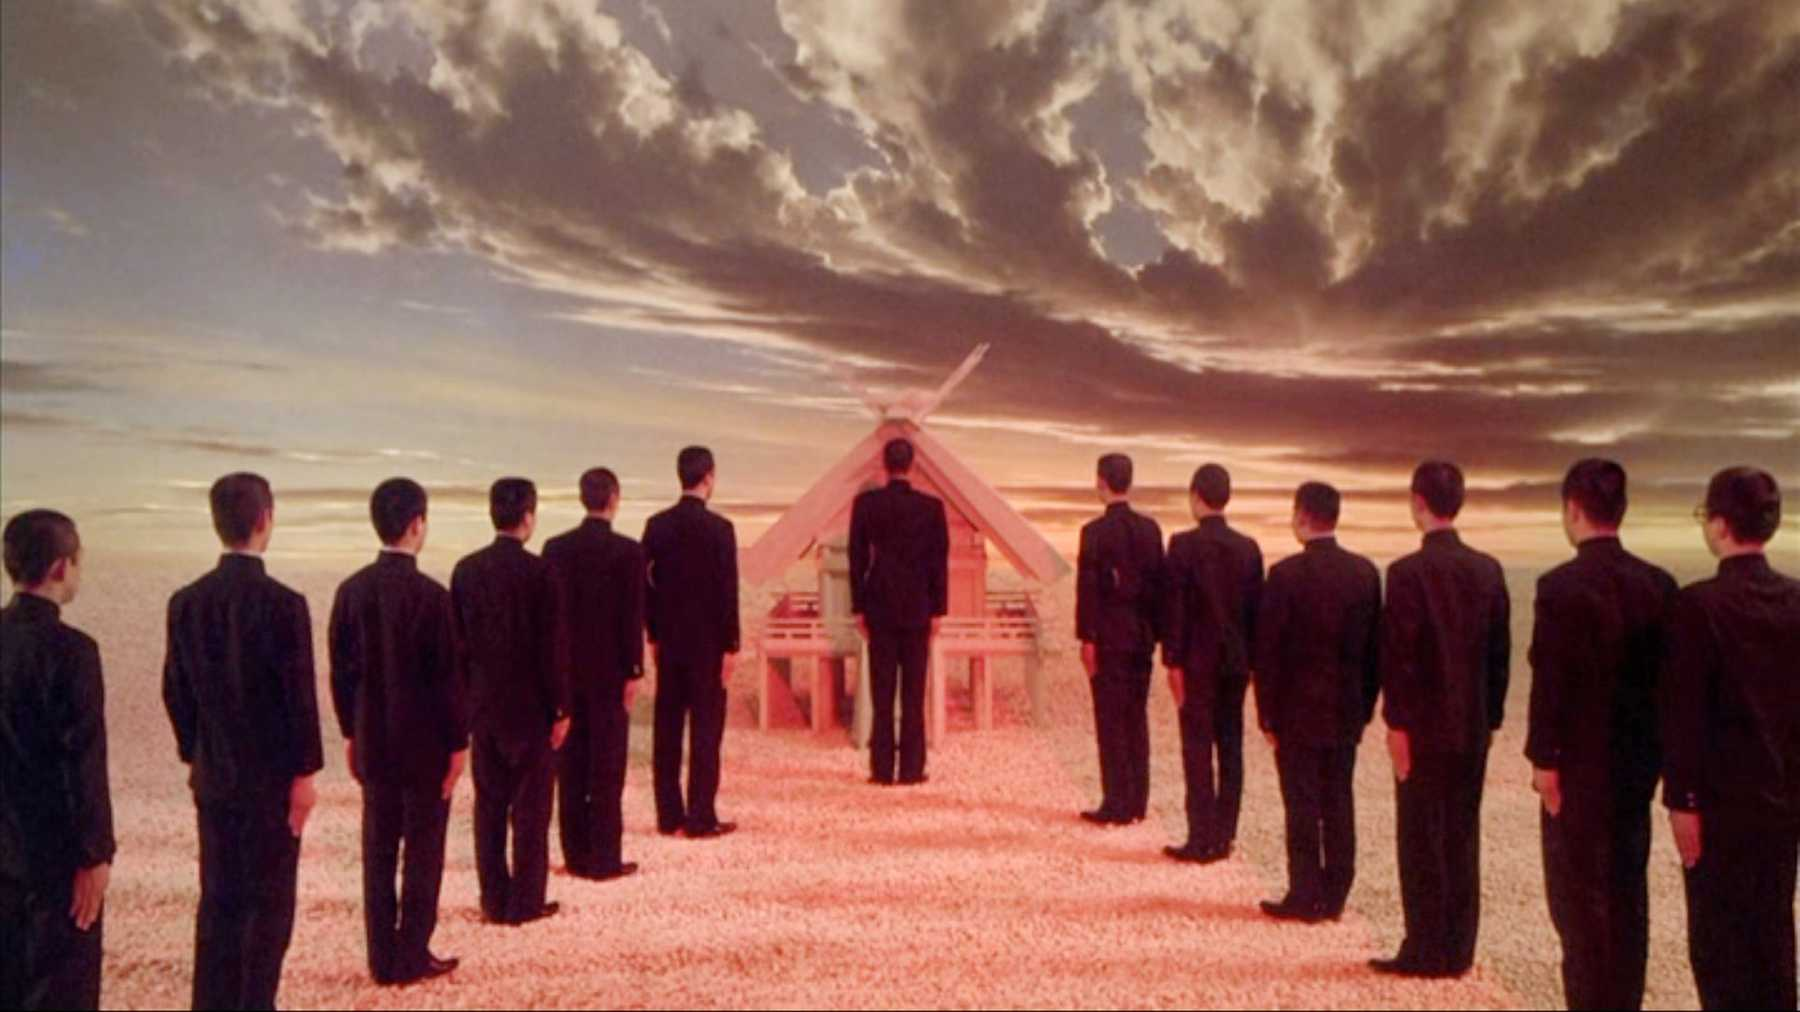 Films in London today: MISHIMA - A LIFE IN FOUR CHAPTERS at Deptford Cinema (17 FEB).